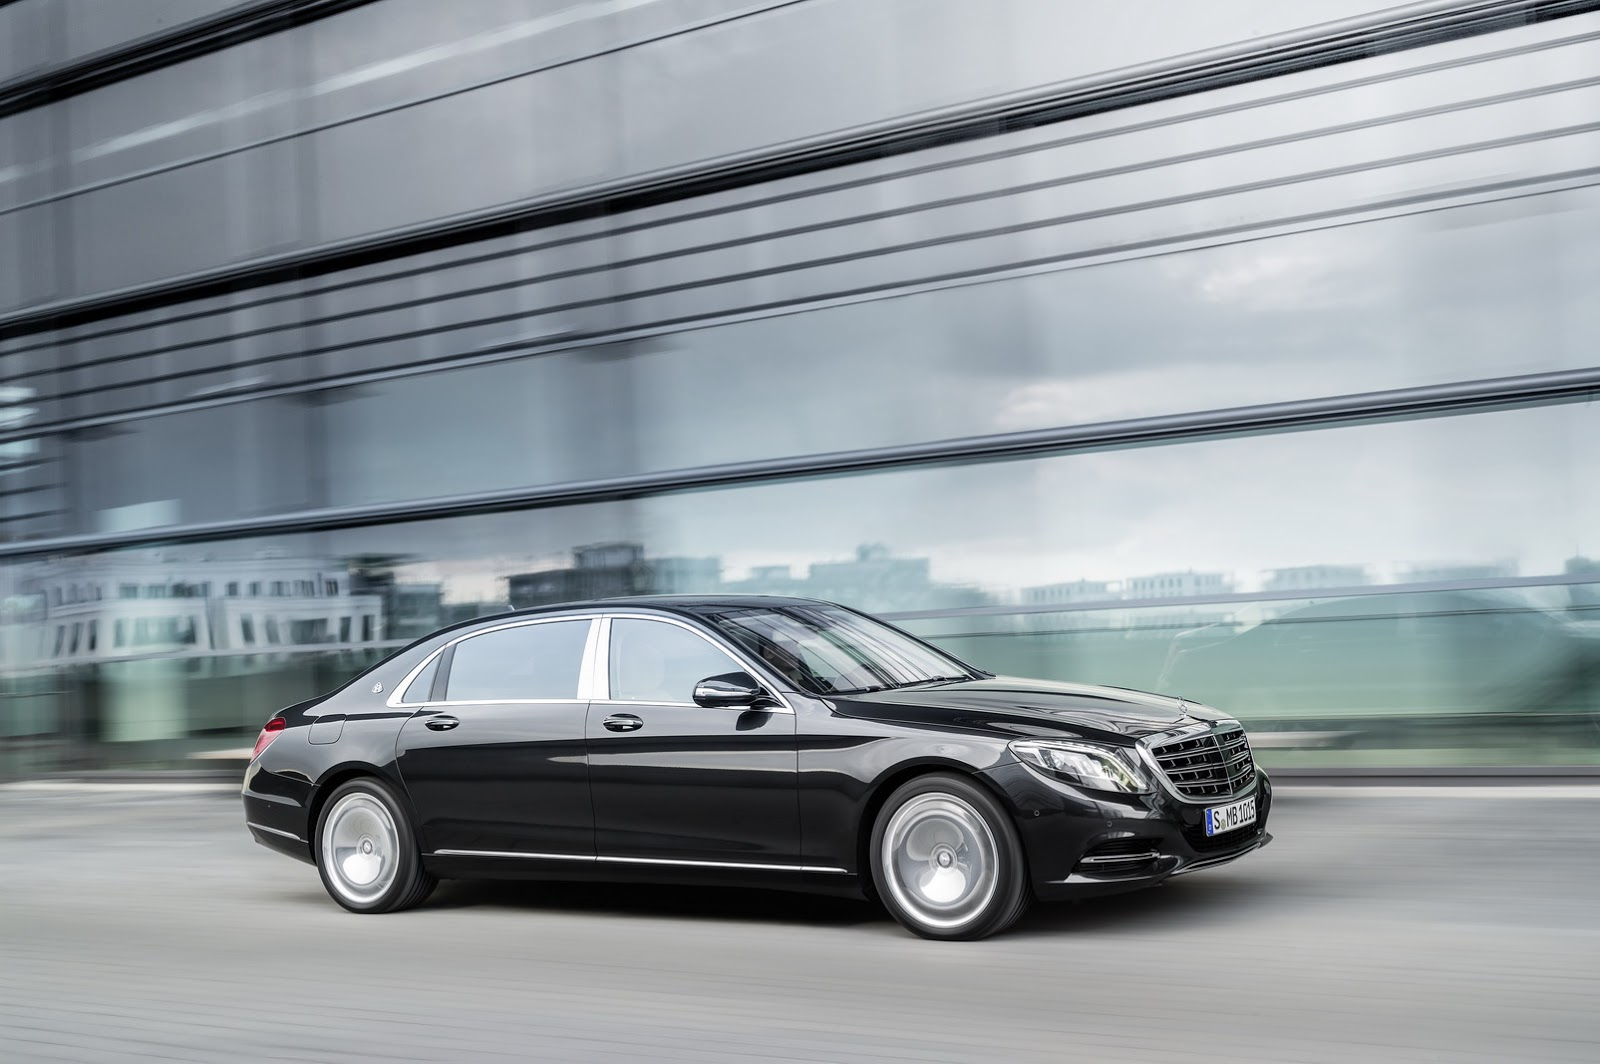 new mercedes maybach s600 from 189 350 in the usa 31k more than s600 carscoops. Black Bedroom Furniture Sets. Home Design Ideas